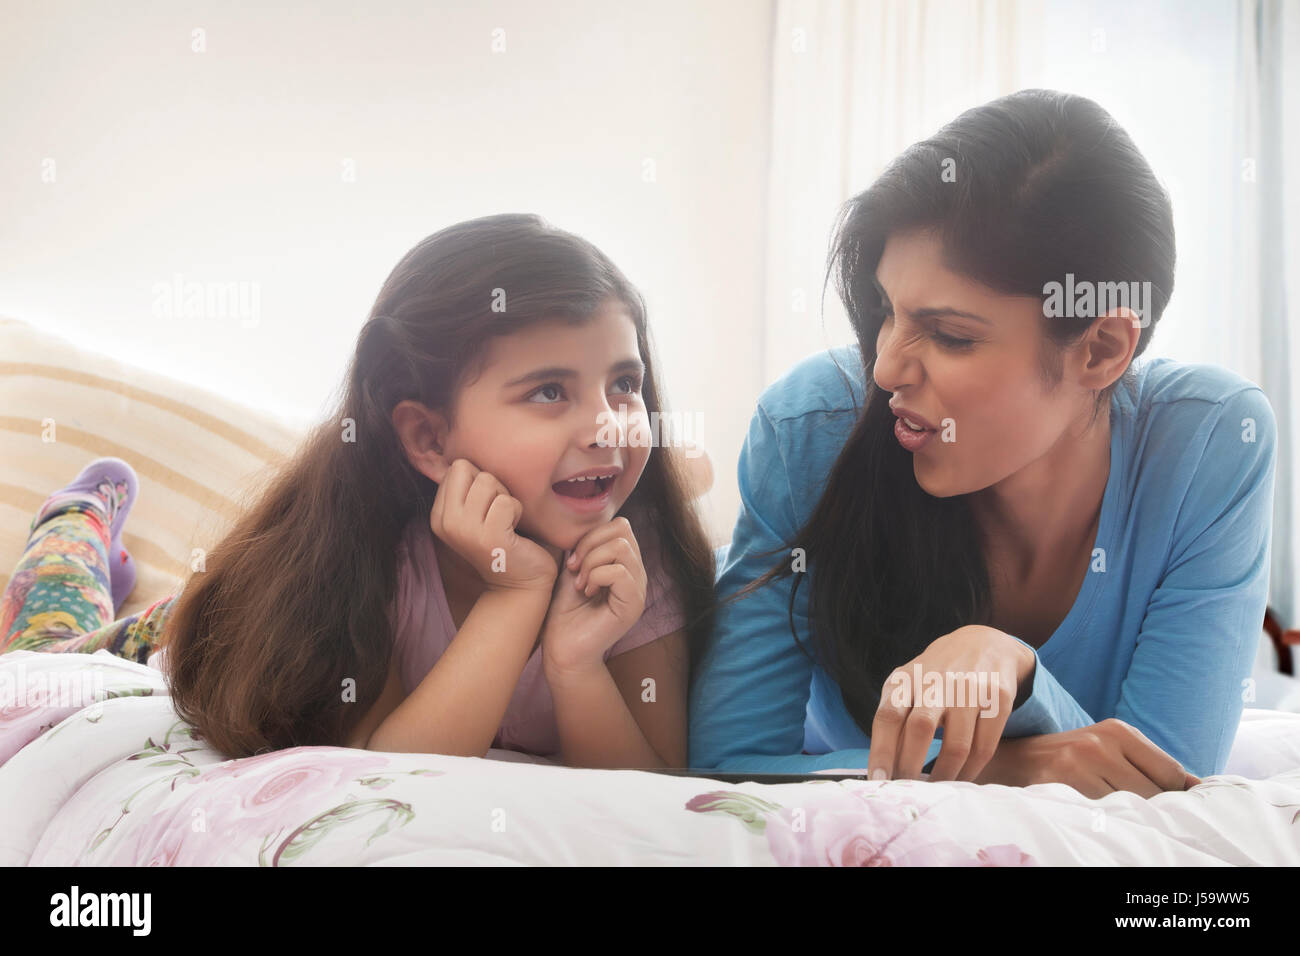 Mother and daughter lying in bed and talking - Stock-Bilder